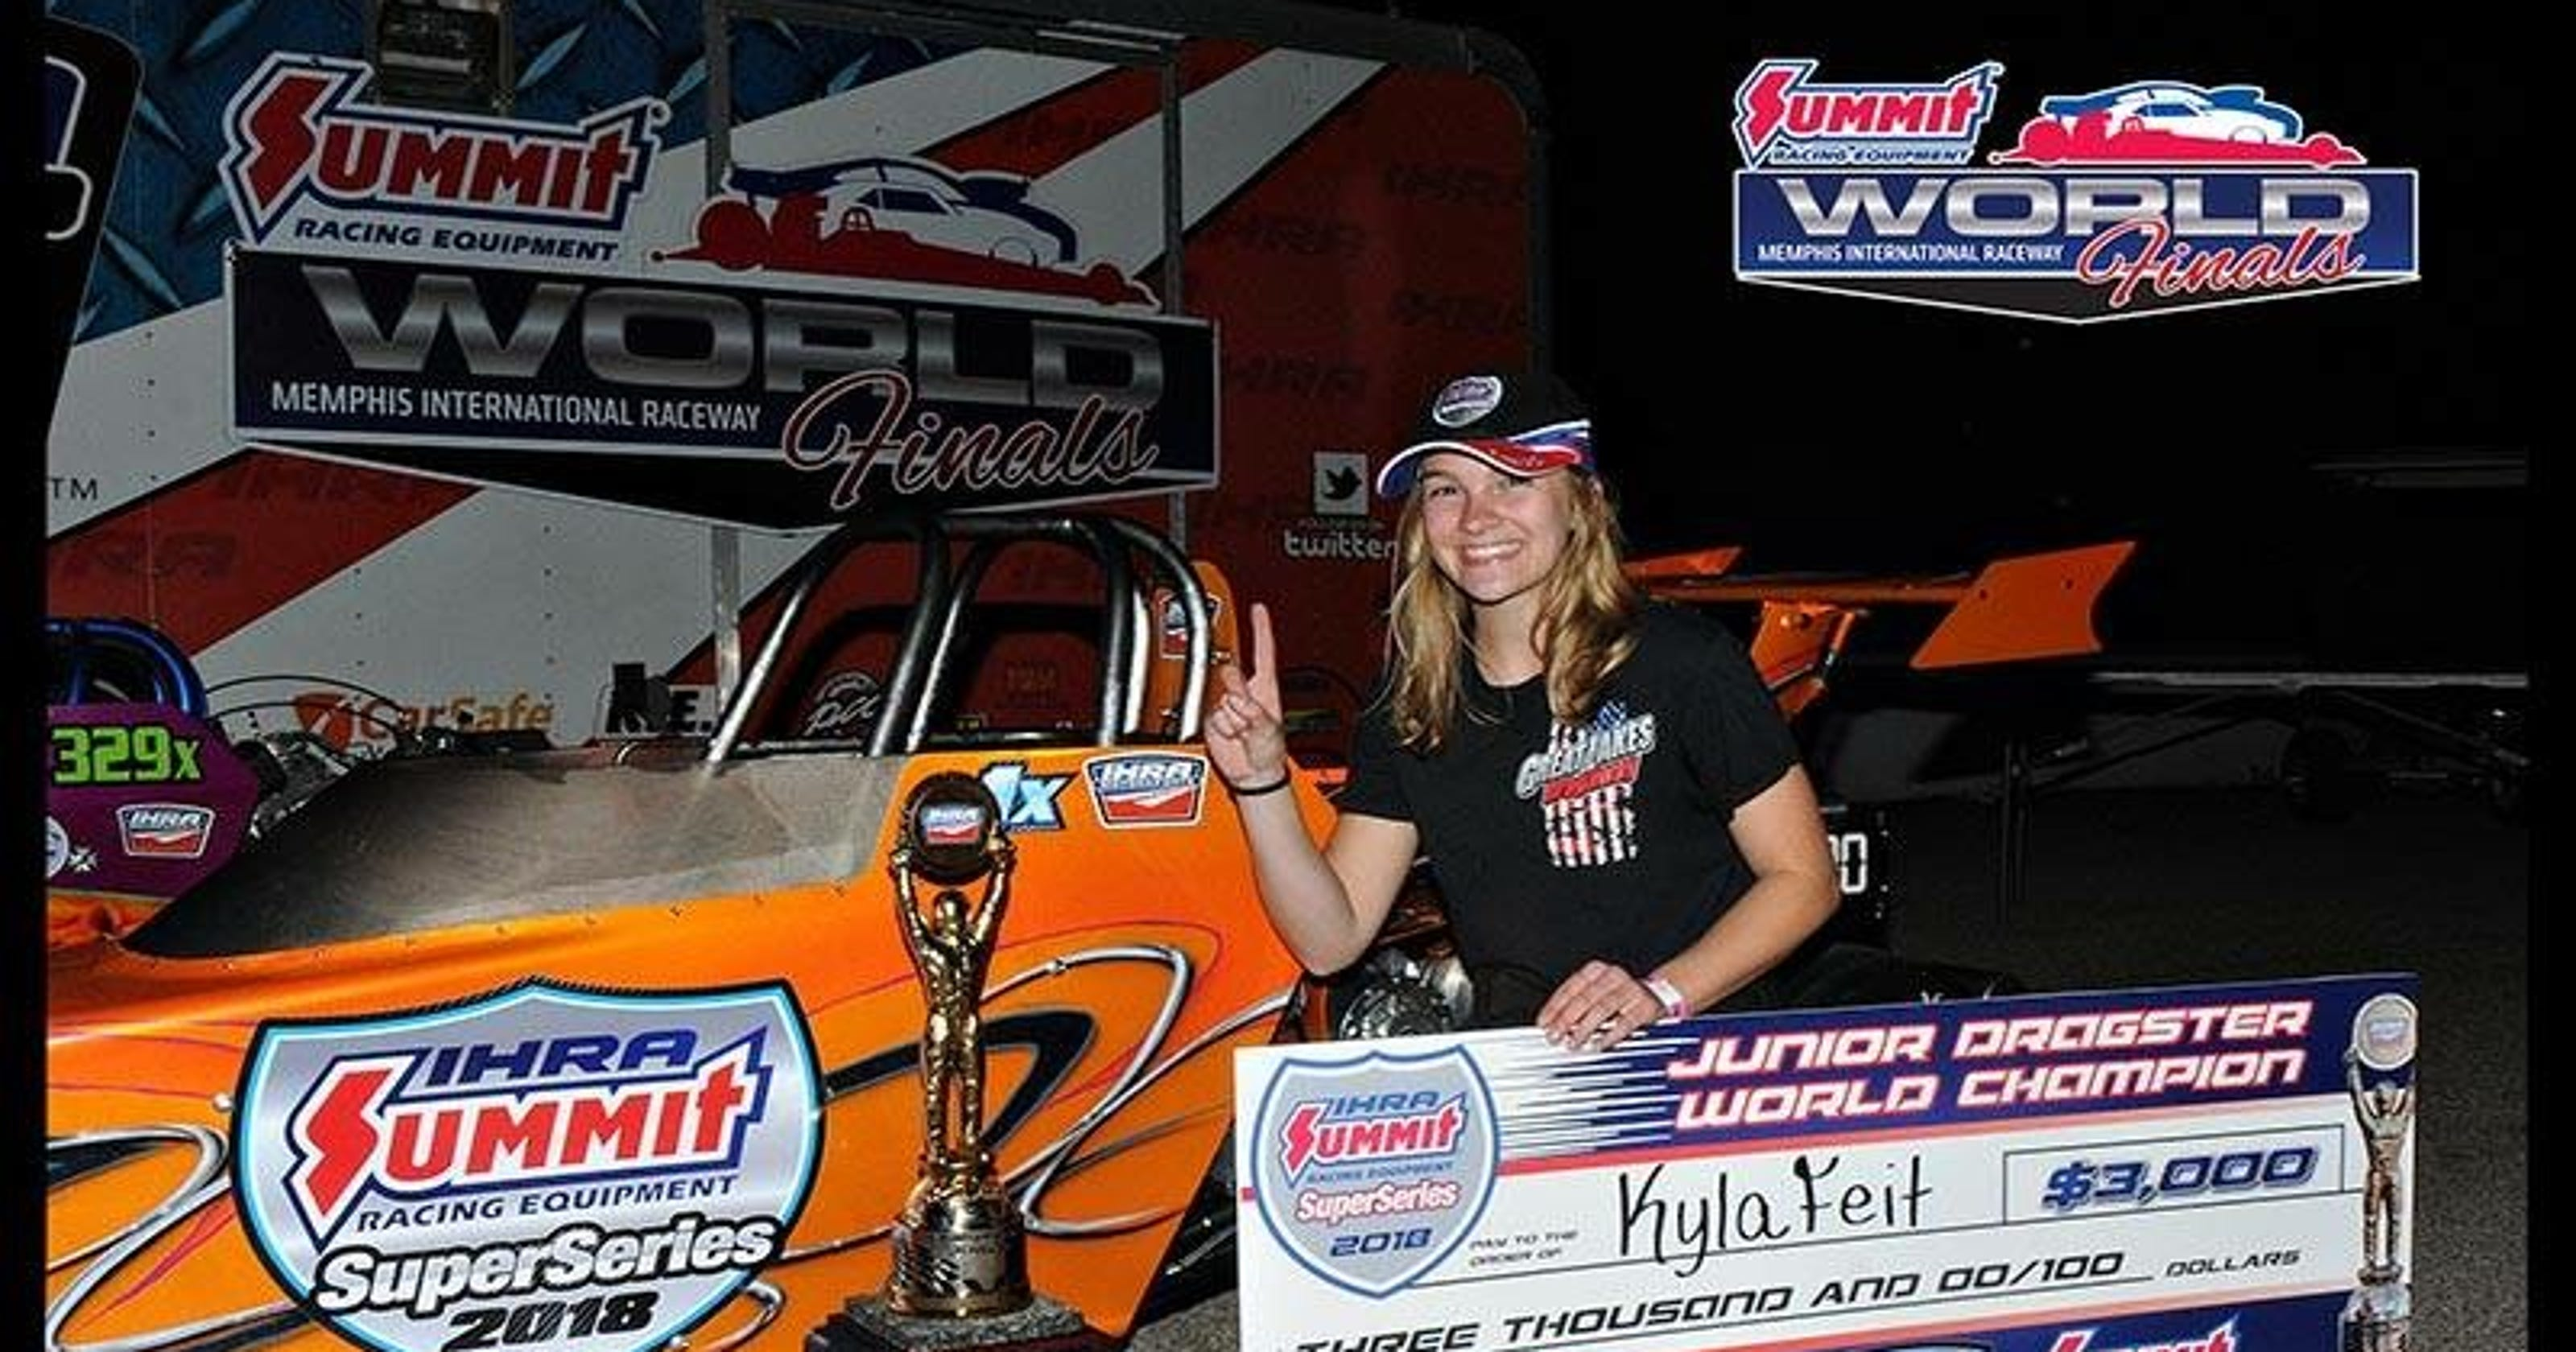 Drag Racing Rapids Kyla Feit Wins Title Of Junior World Champion